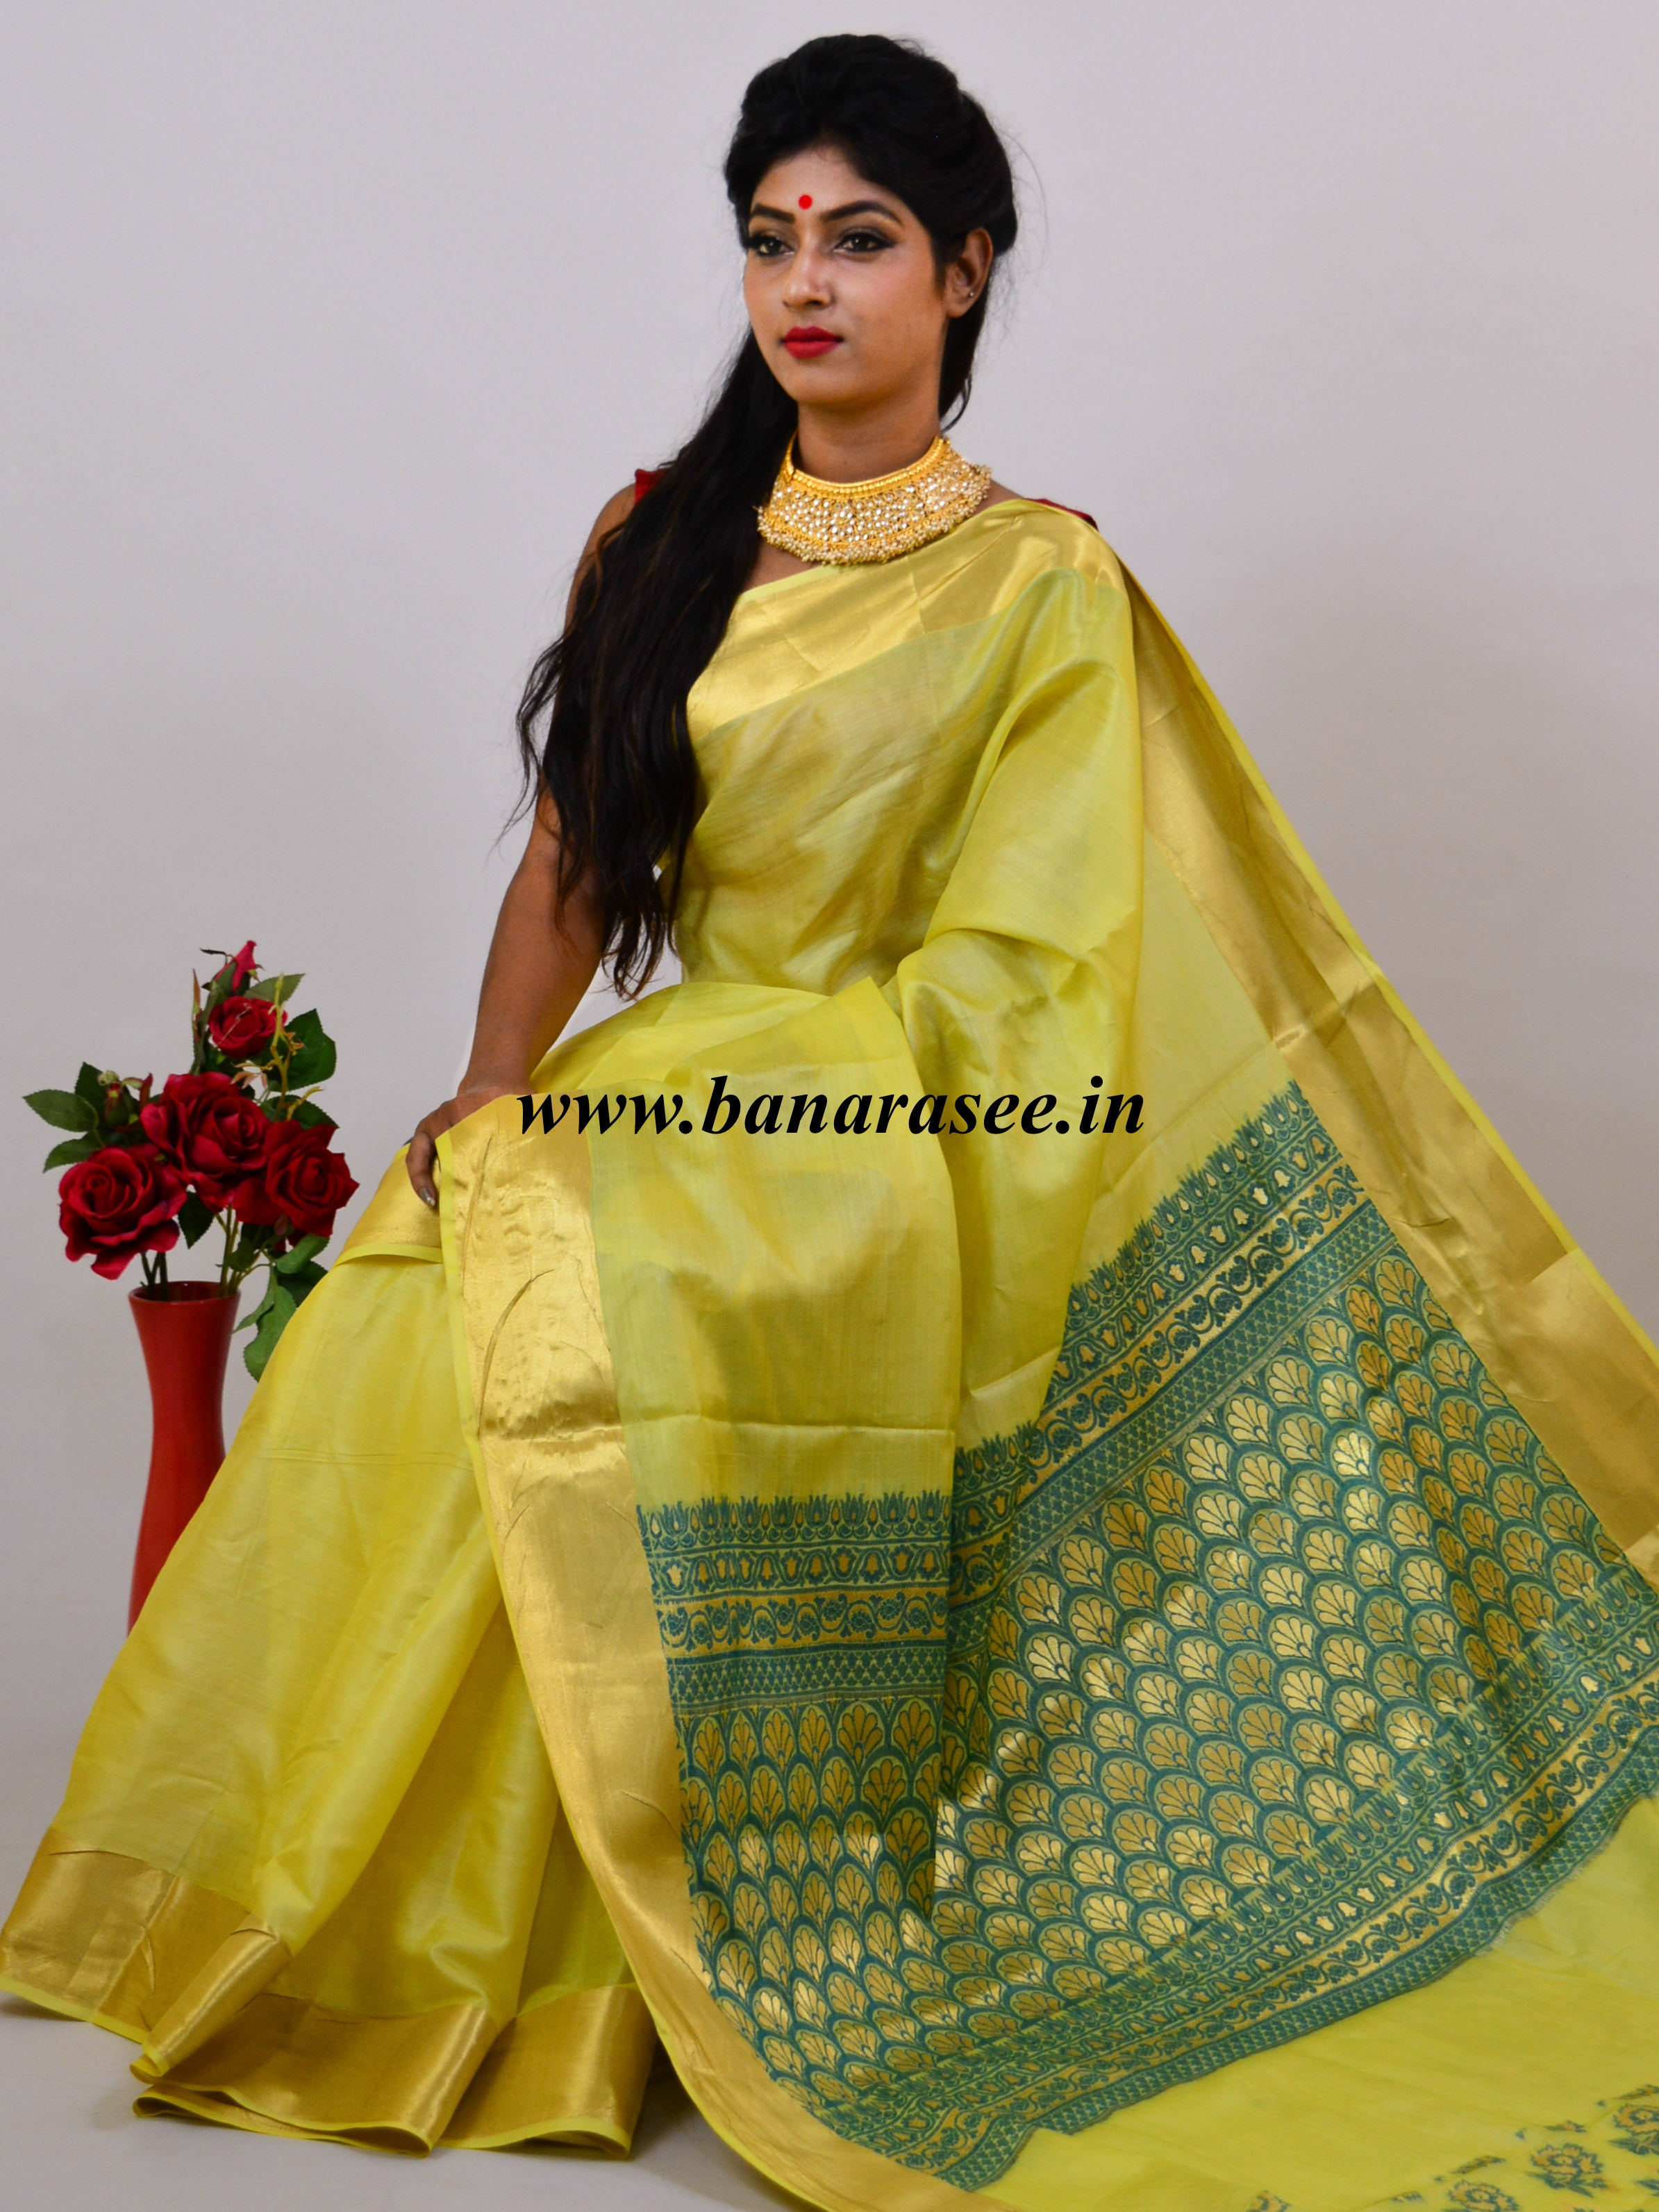 Banarasee Handwoven Pure Tussar Silk Sari With Gold Border-Bright Yellow